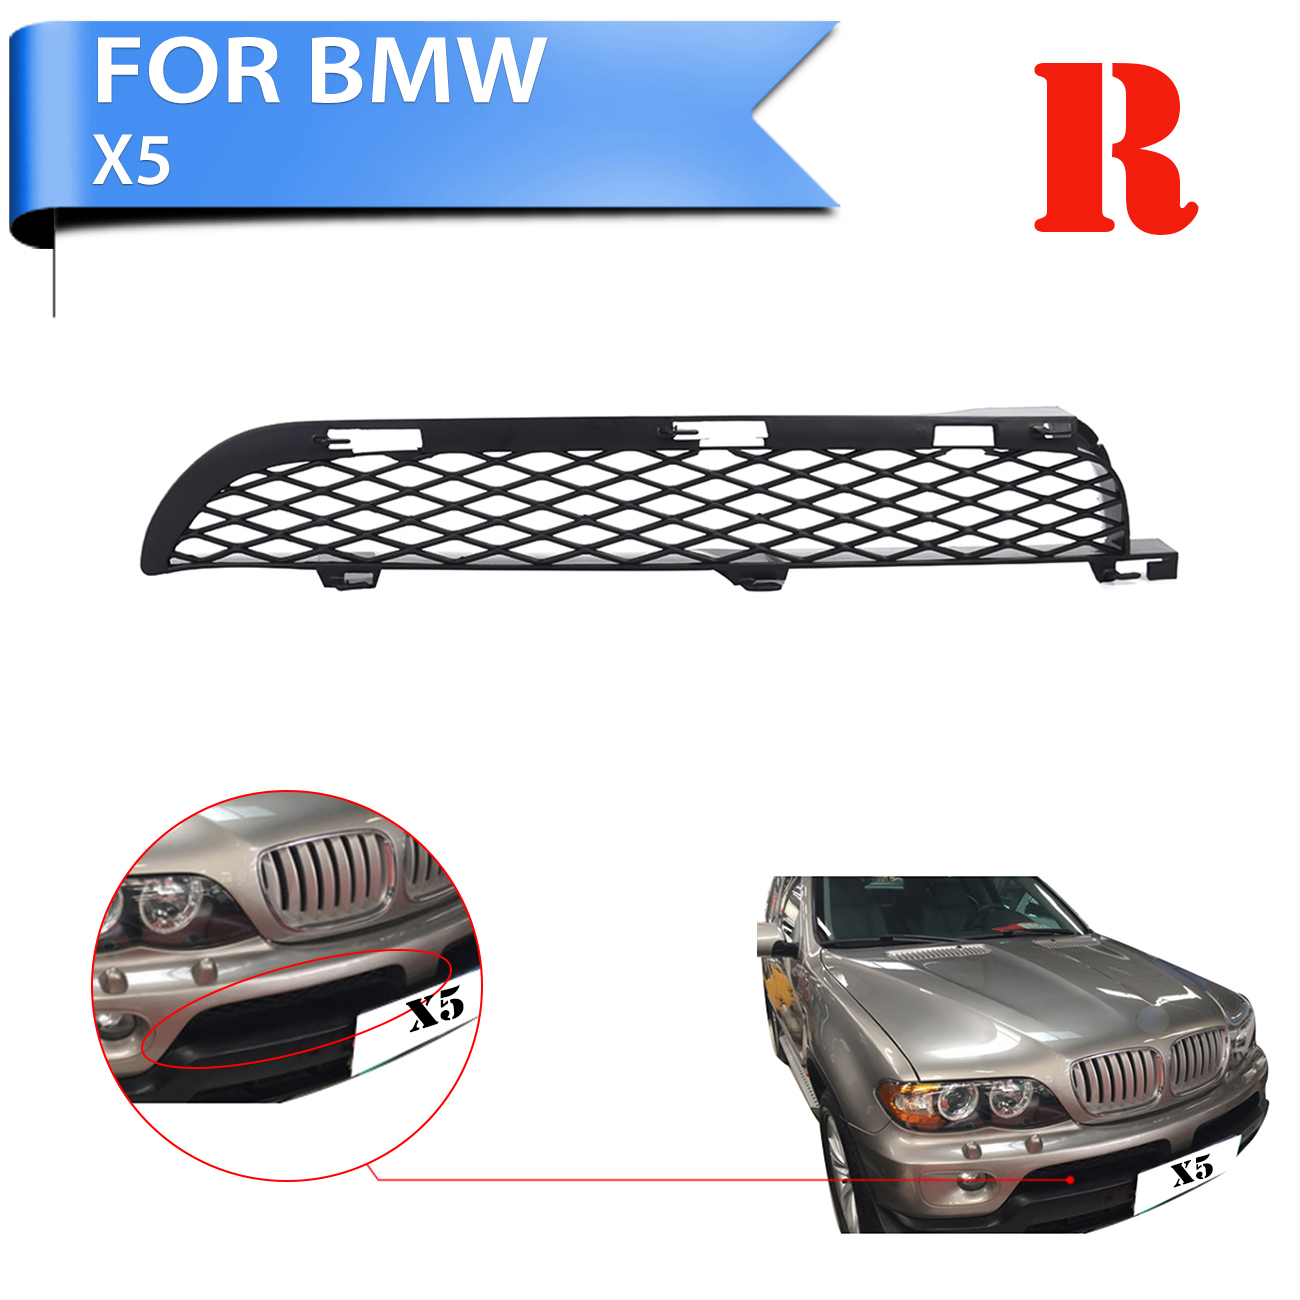 Compare Prices On Suv Grill Online Shopping Buy Low Price Suv